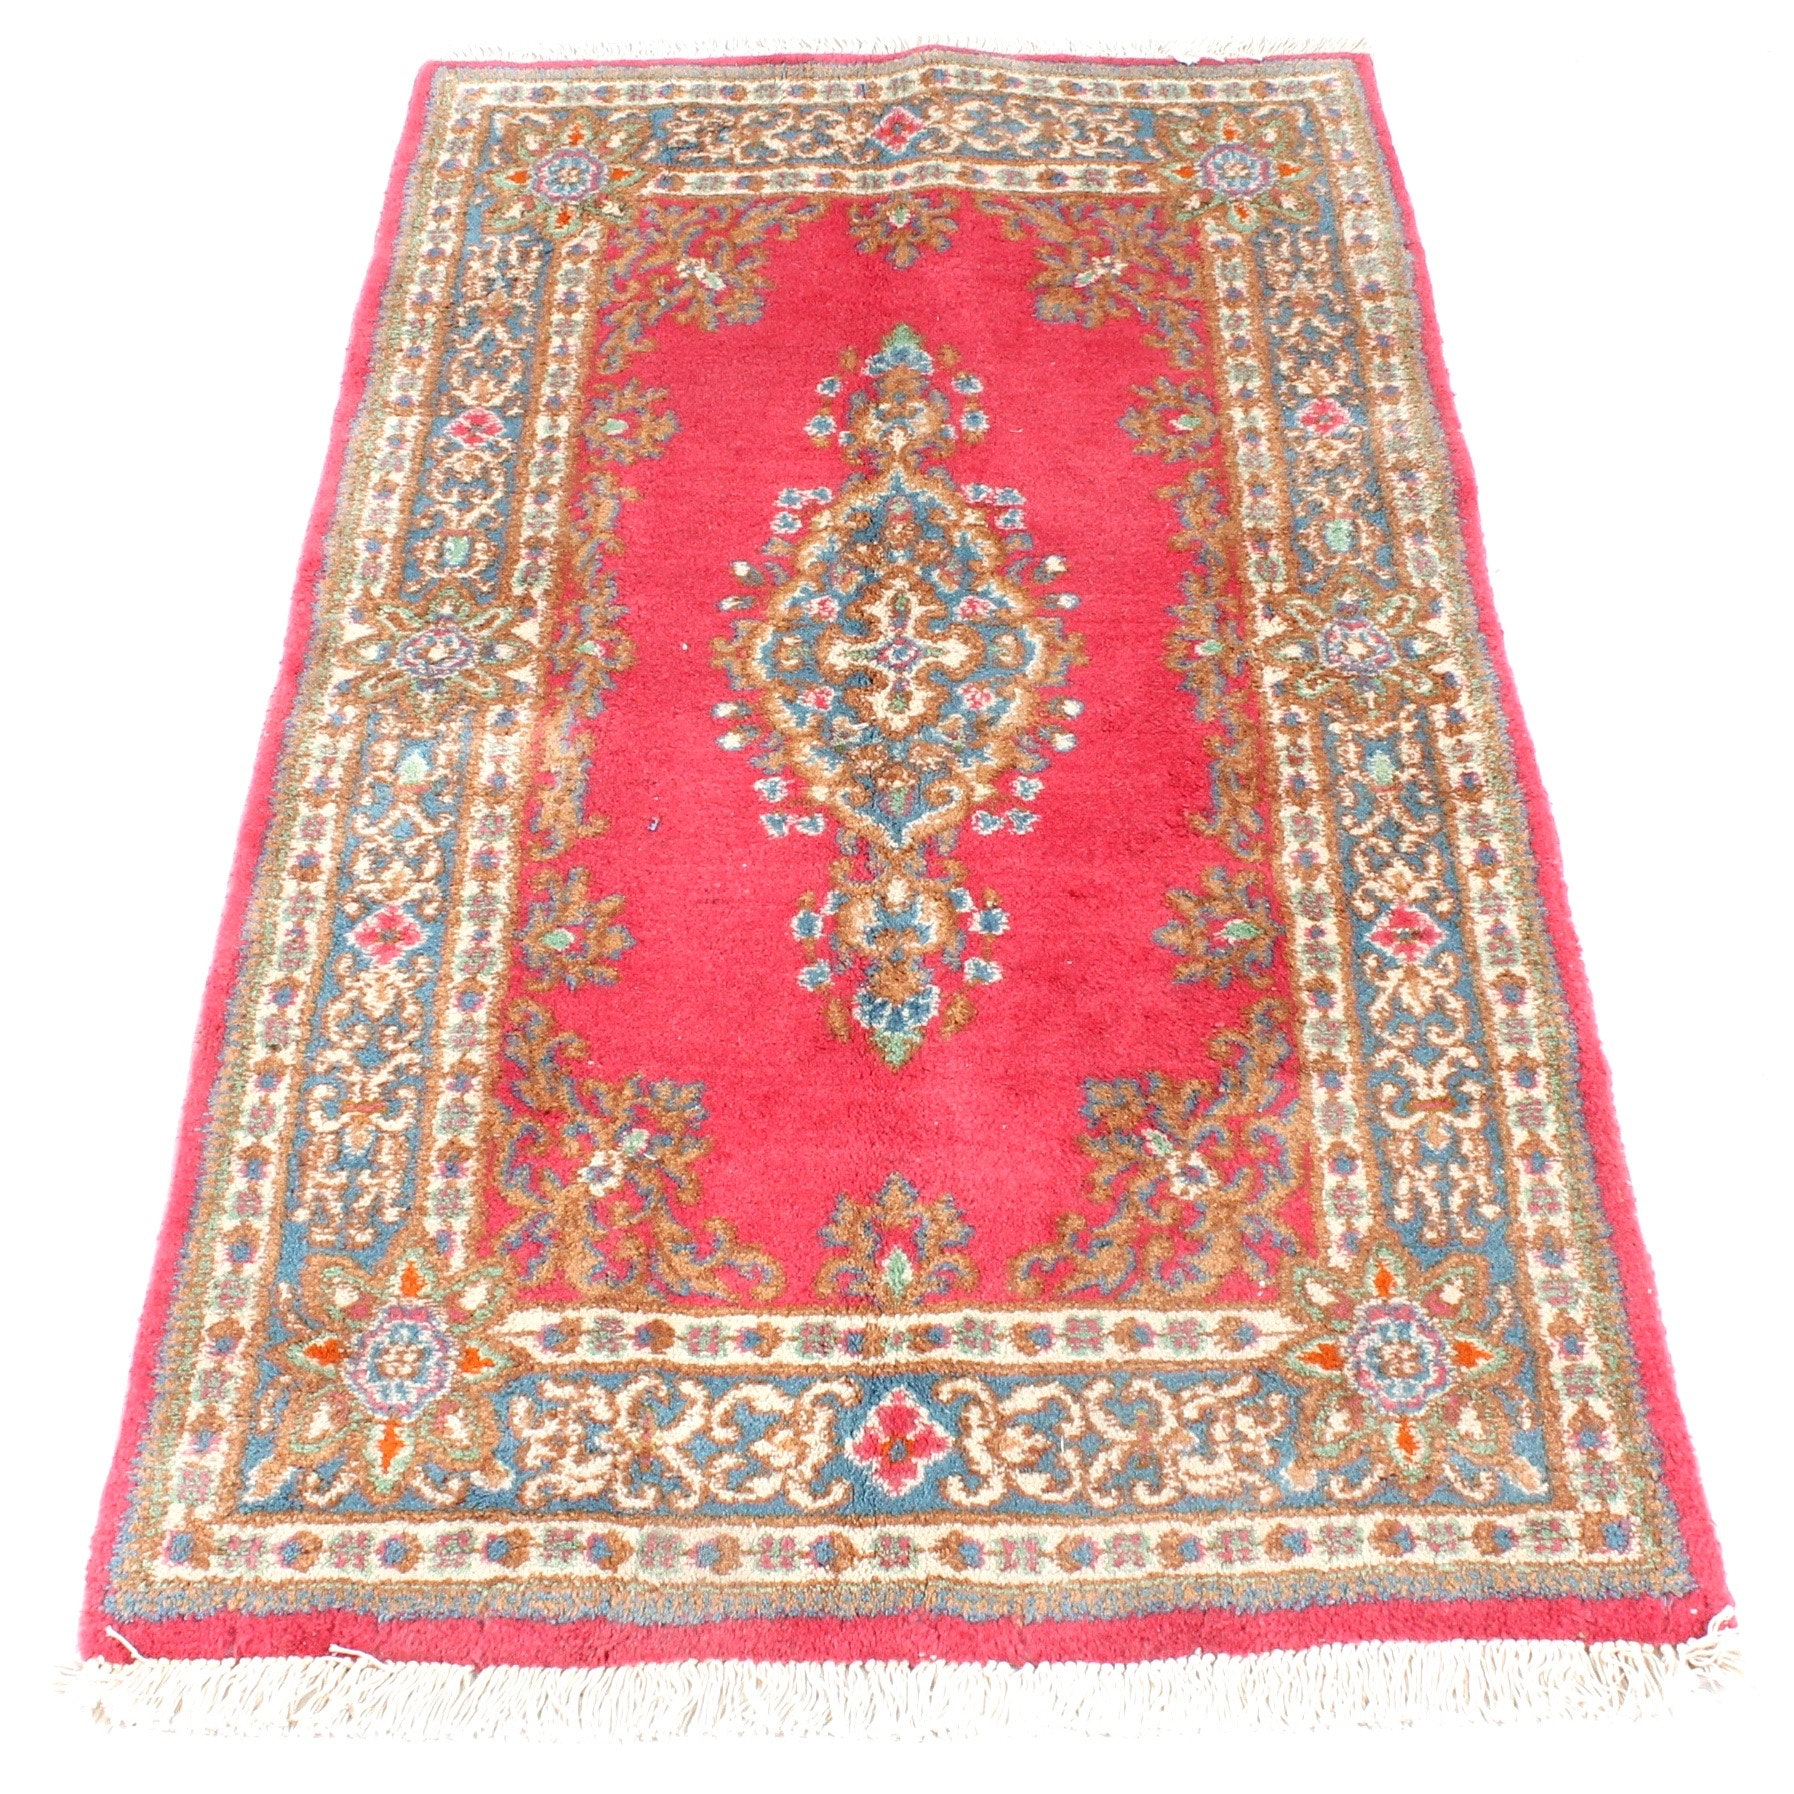 Fine Hand-Knotted Persian Kerman Rug